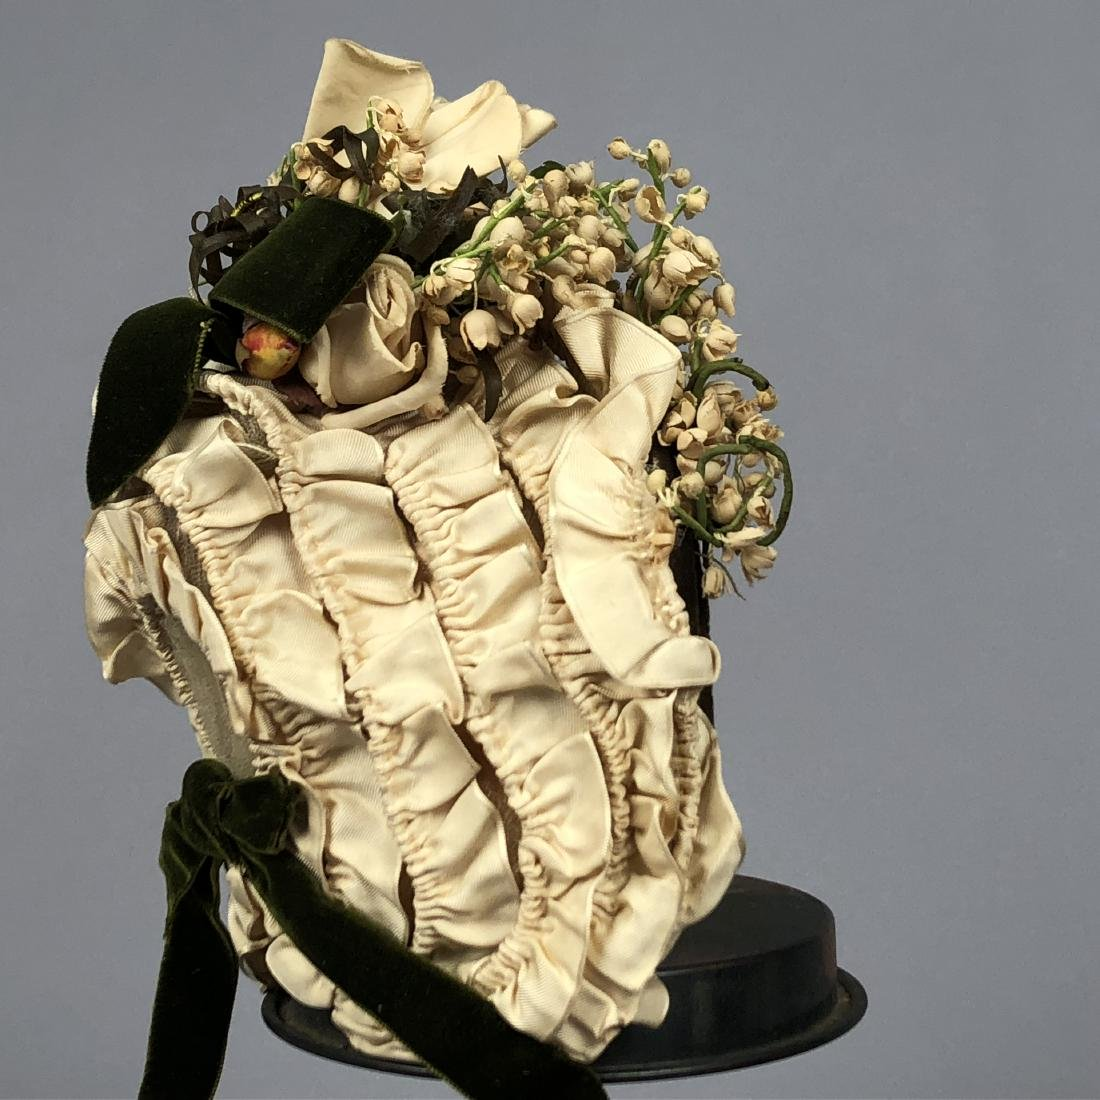 TWO WIRED BONNETS worn by JULIA BUTTERFIELD, 1890 - 2